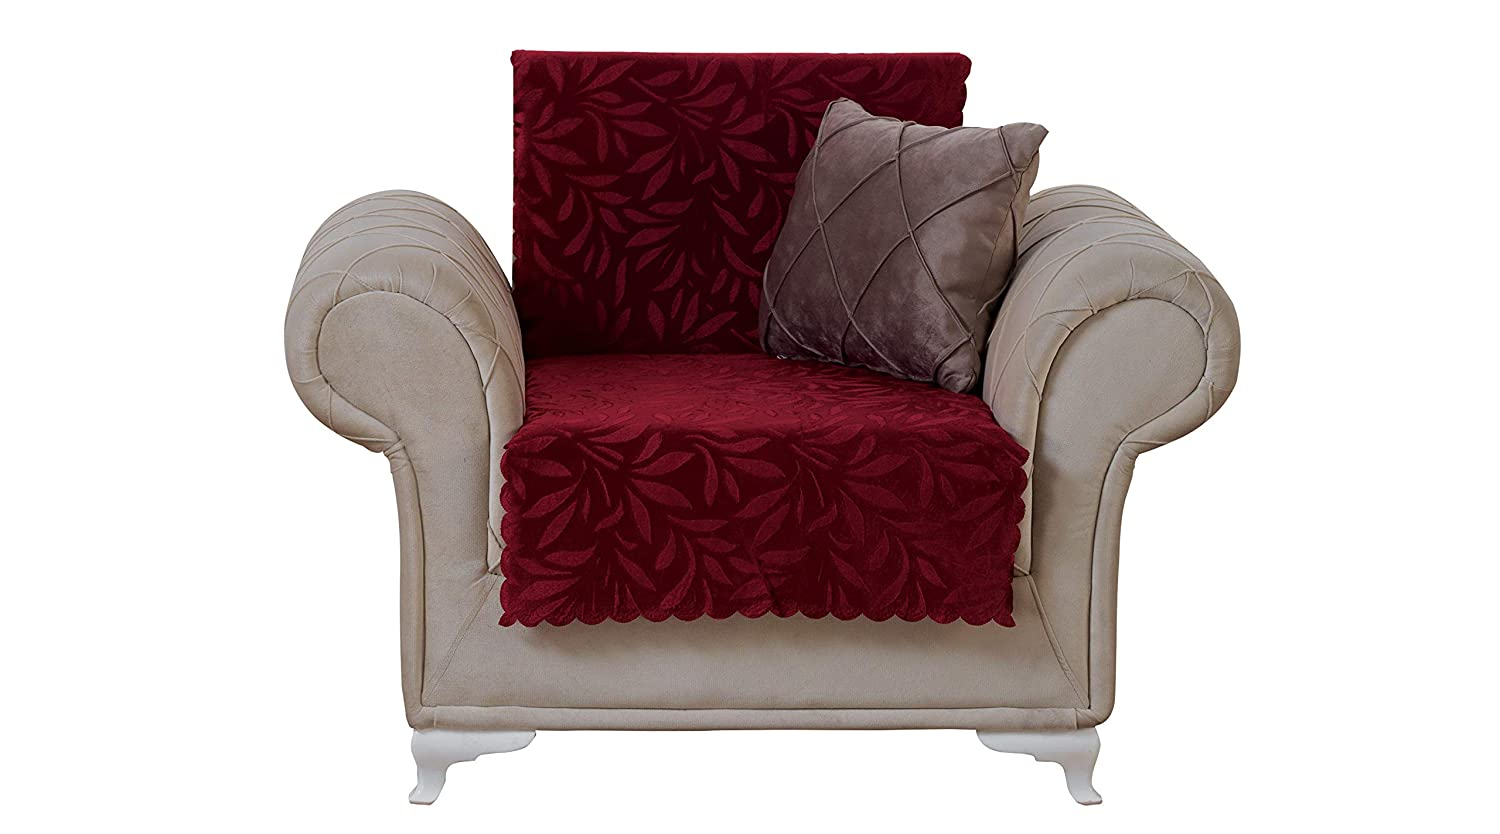 Amazoncom Chiara Rose Acacia Armchair Slipcover 3 Cushion Sofa